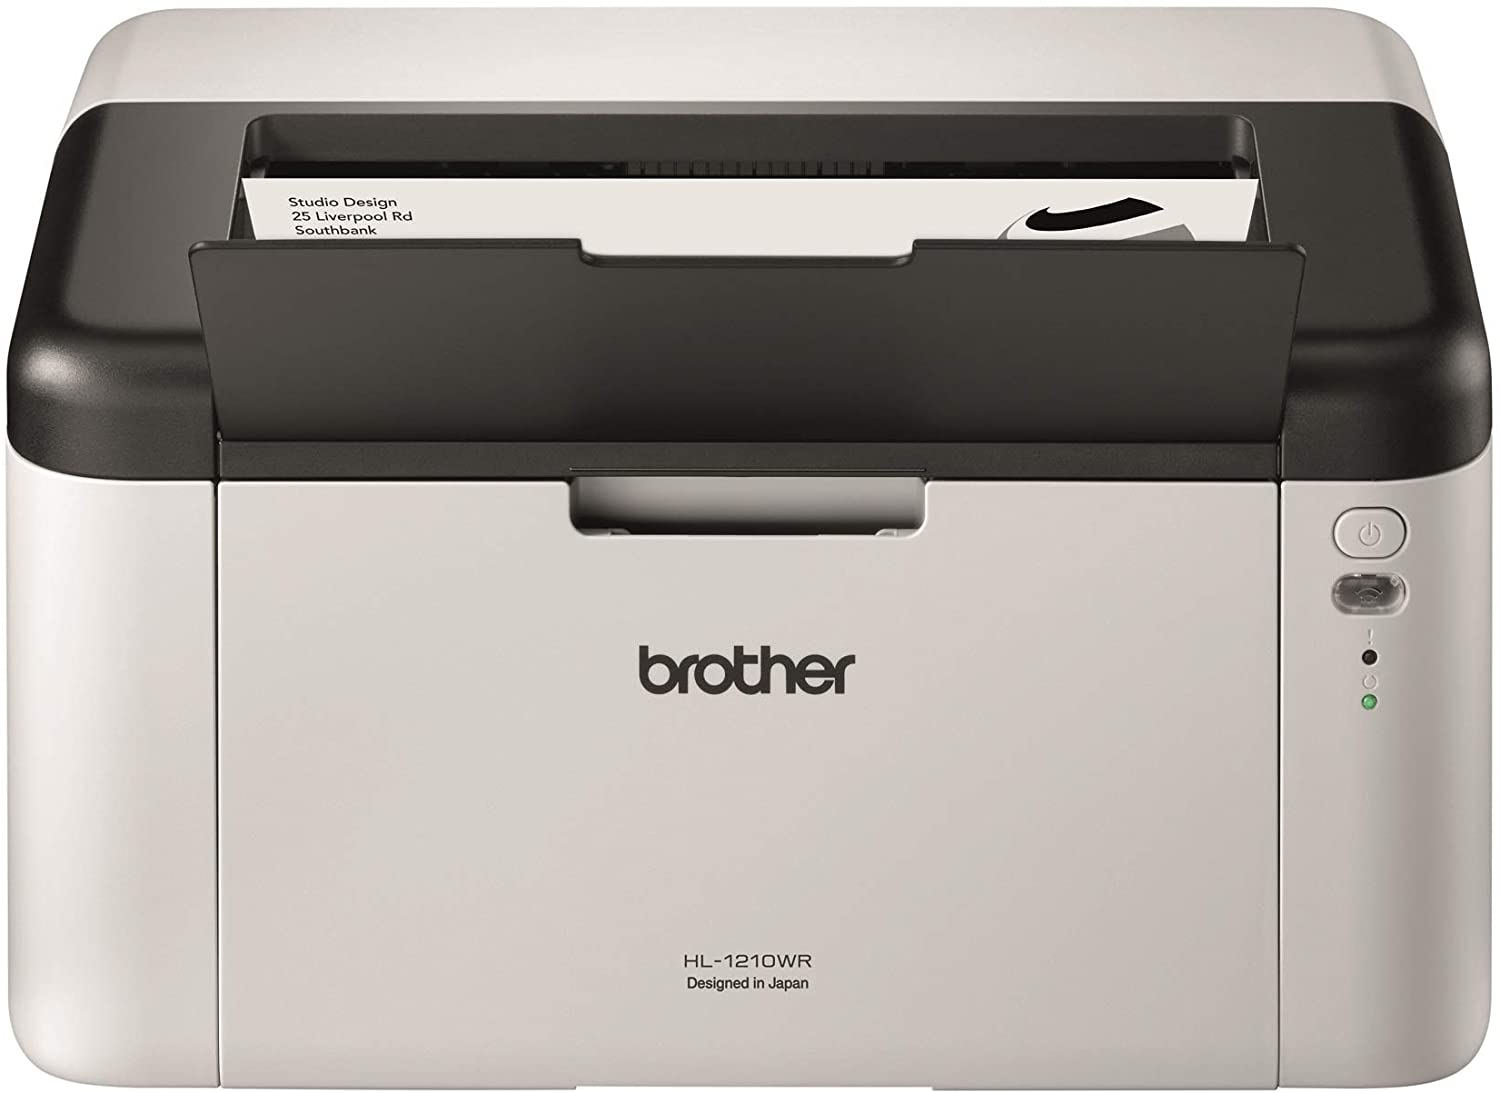 Brother HL-1210W Mono Laser Printer - Single Function, Wireless USB 2.0, Compact, A4 Printer, Small Office Home Printer, White uk reviews